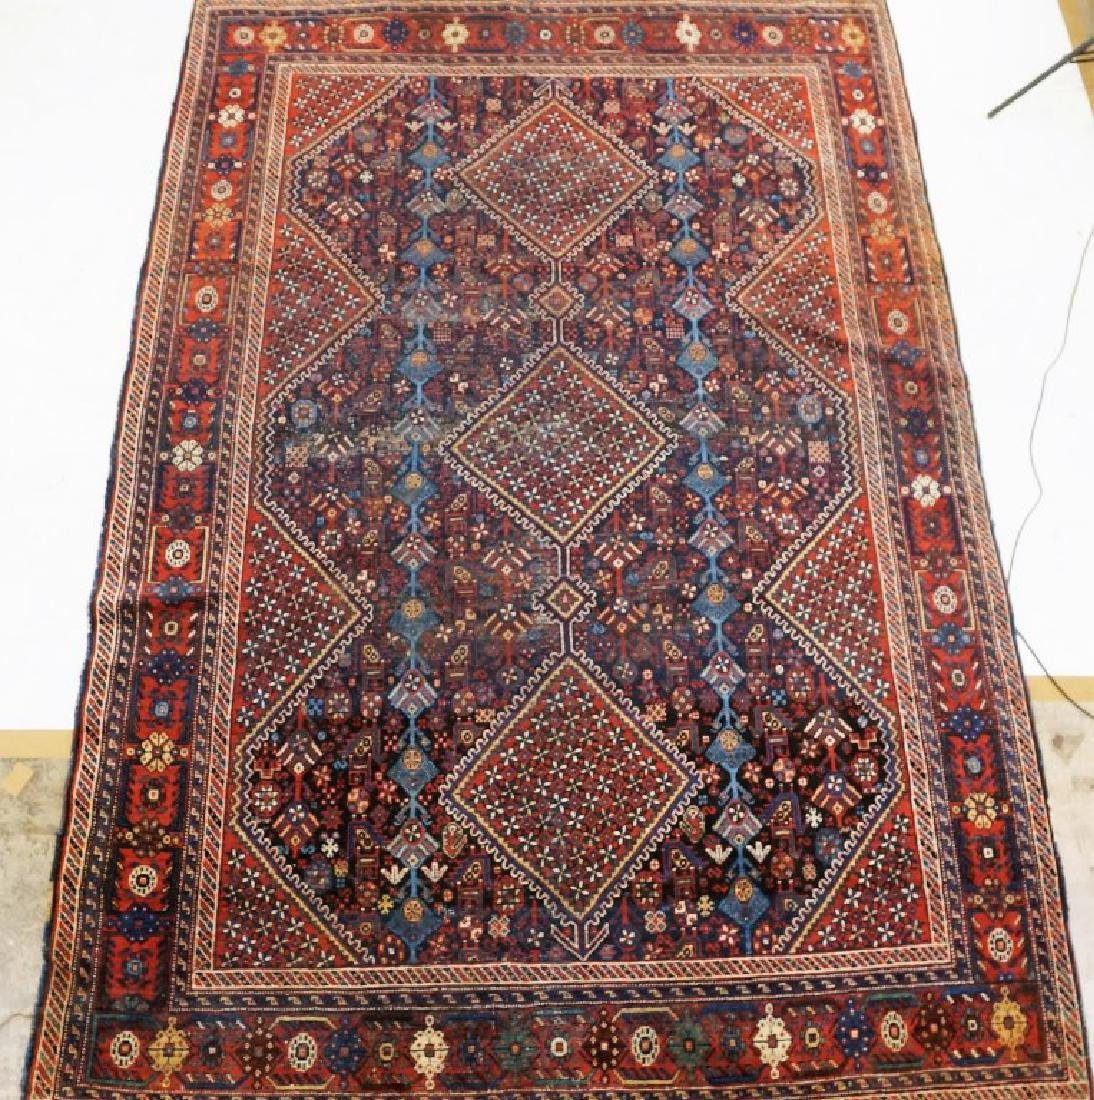 ANTIQUE HAND KNOTTED BALUCH RUG - 2